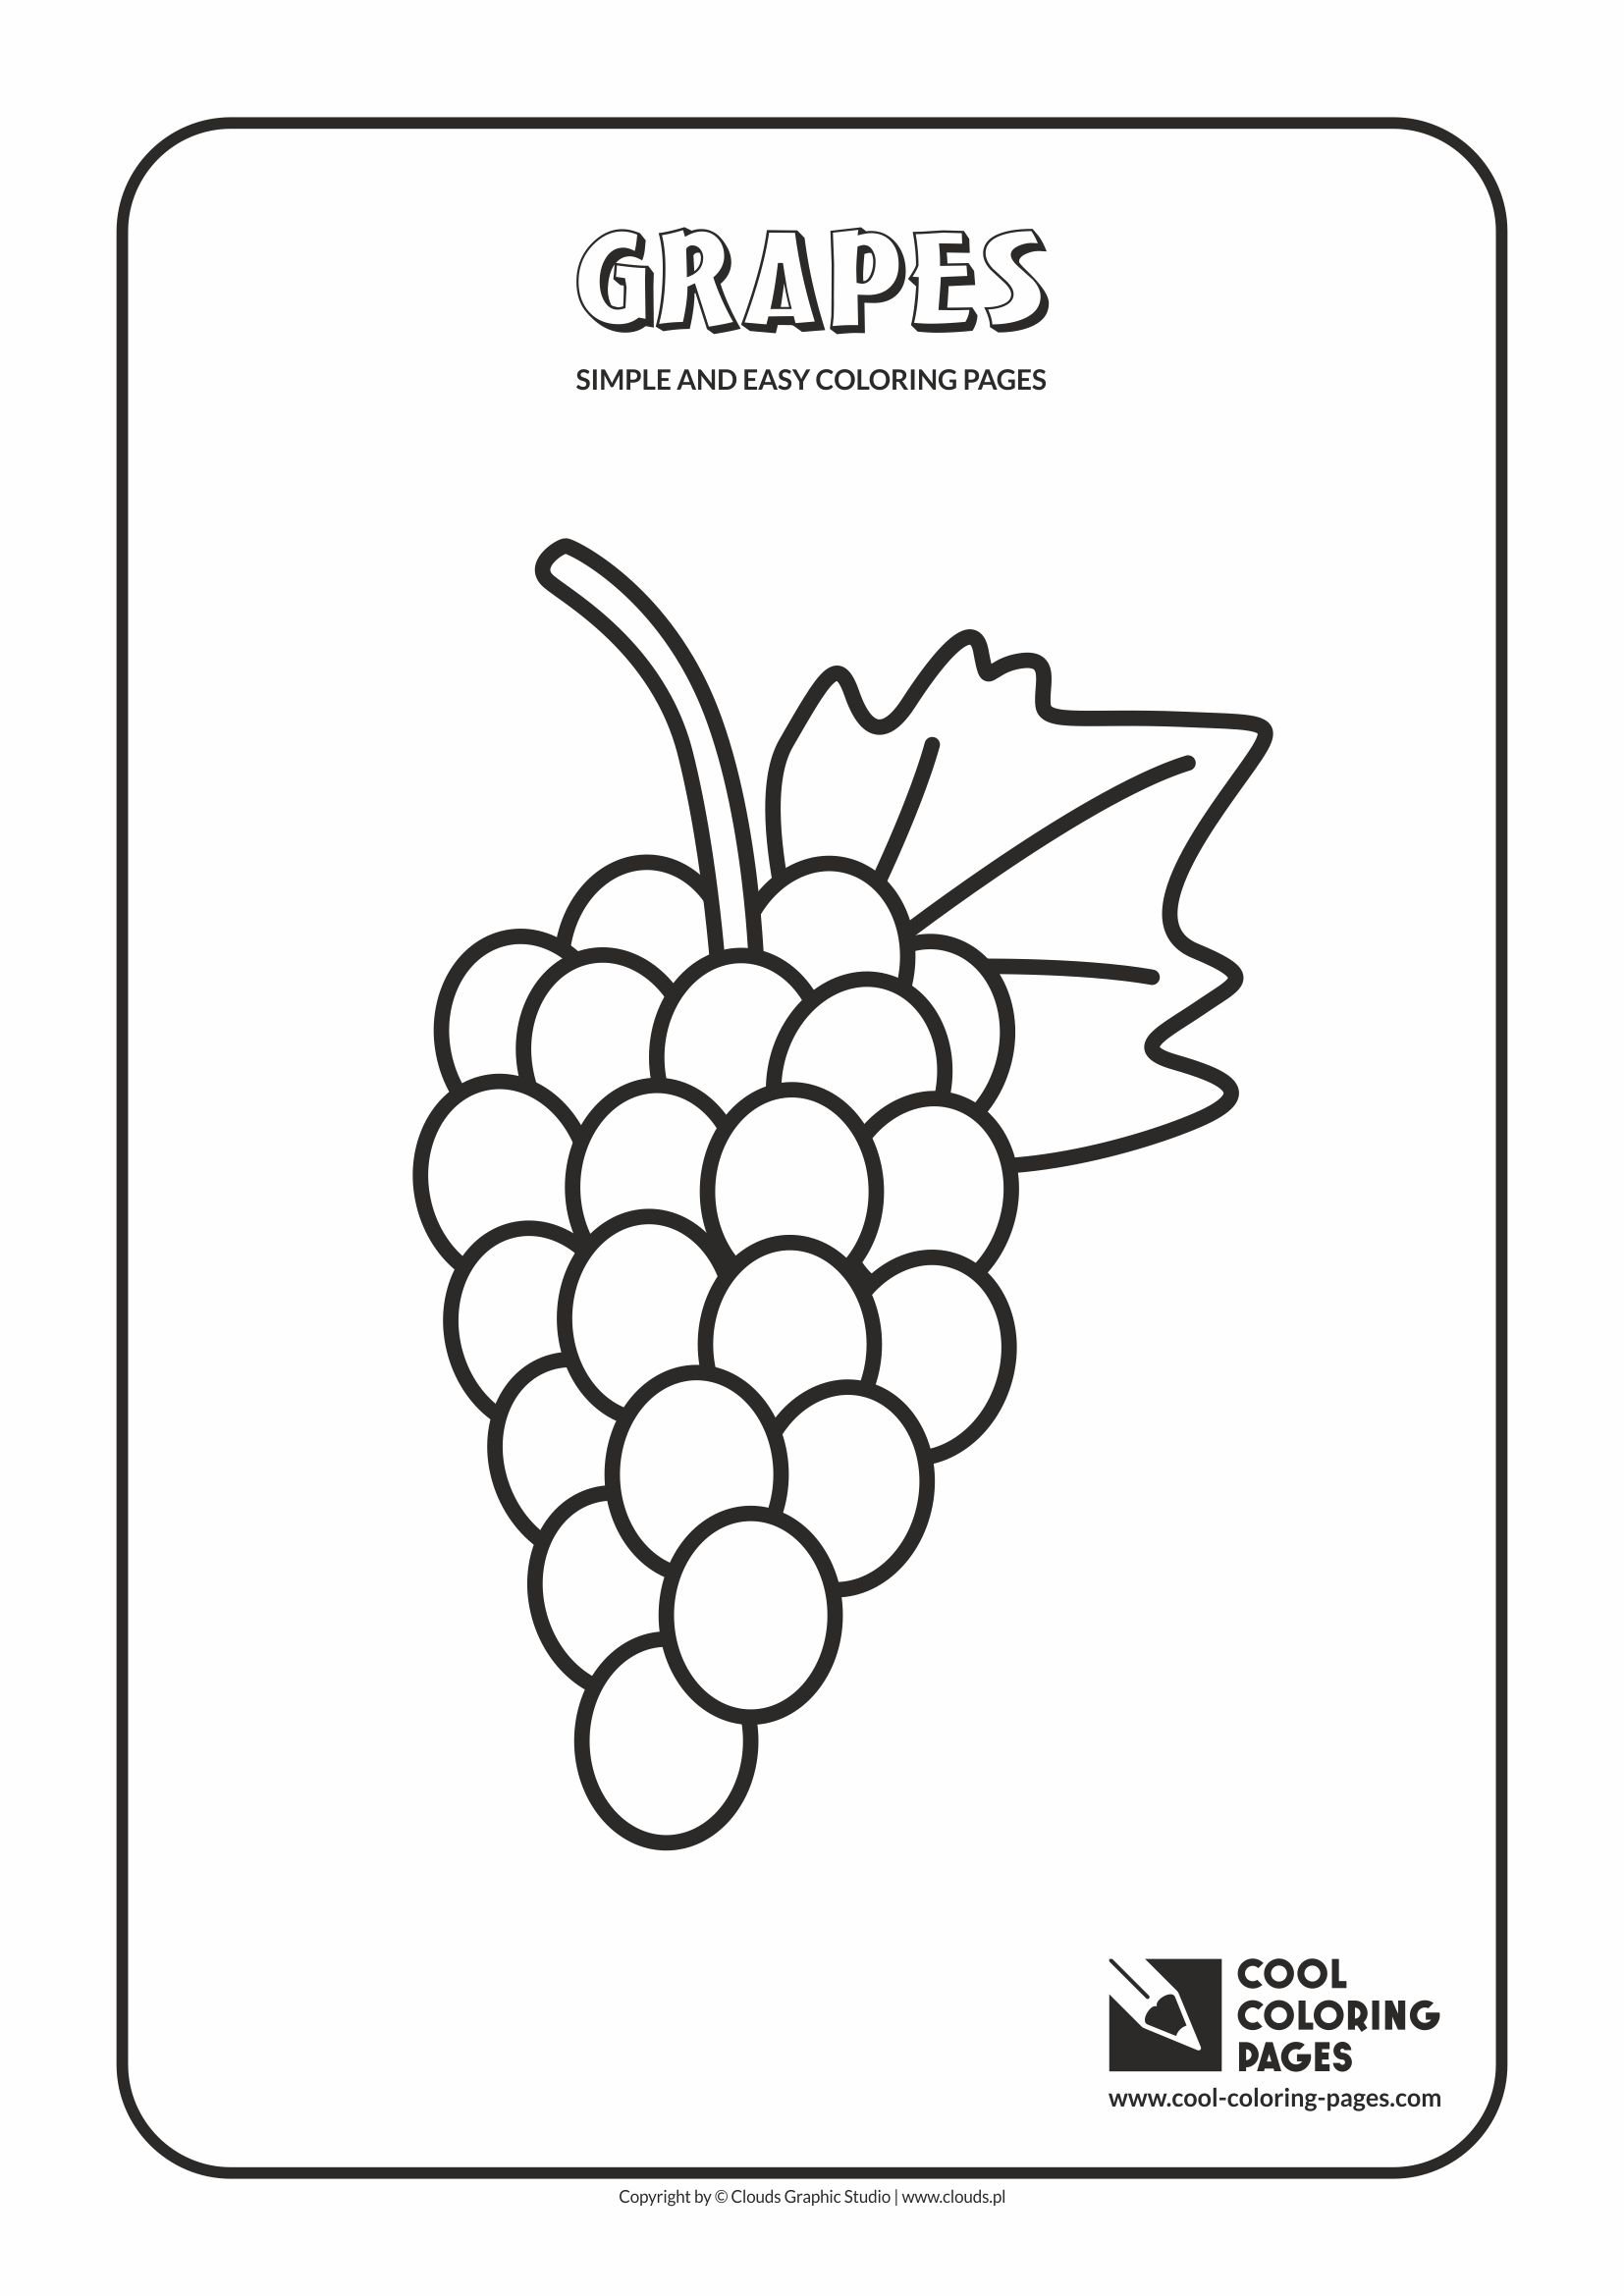 Cool Coloring Pages Simple and